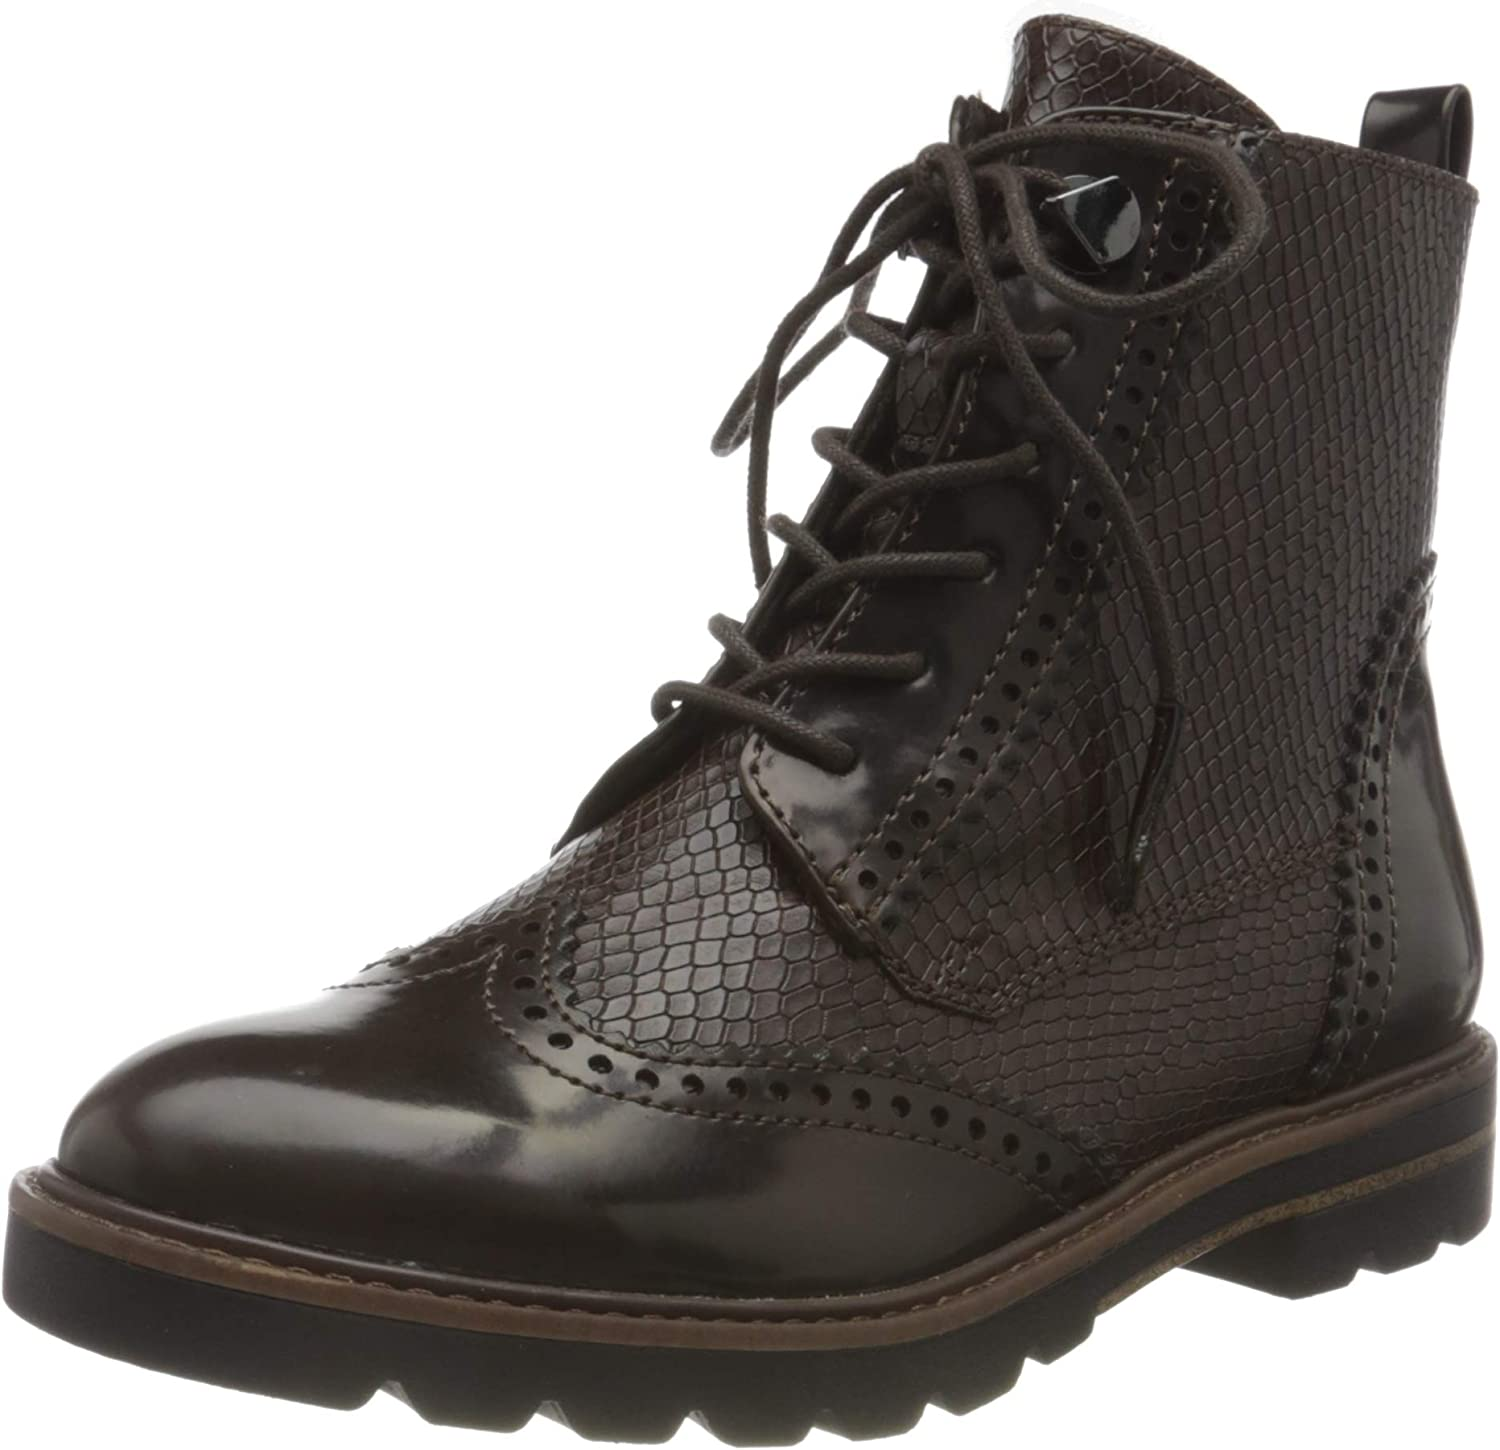 MARCO TOZZI San Antonio Mall Women's 2-2-25213-25 Schnürboot Mocca Co Ankle Sales results No. 1 Boot